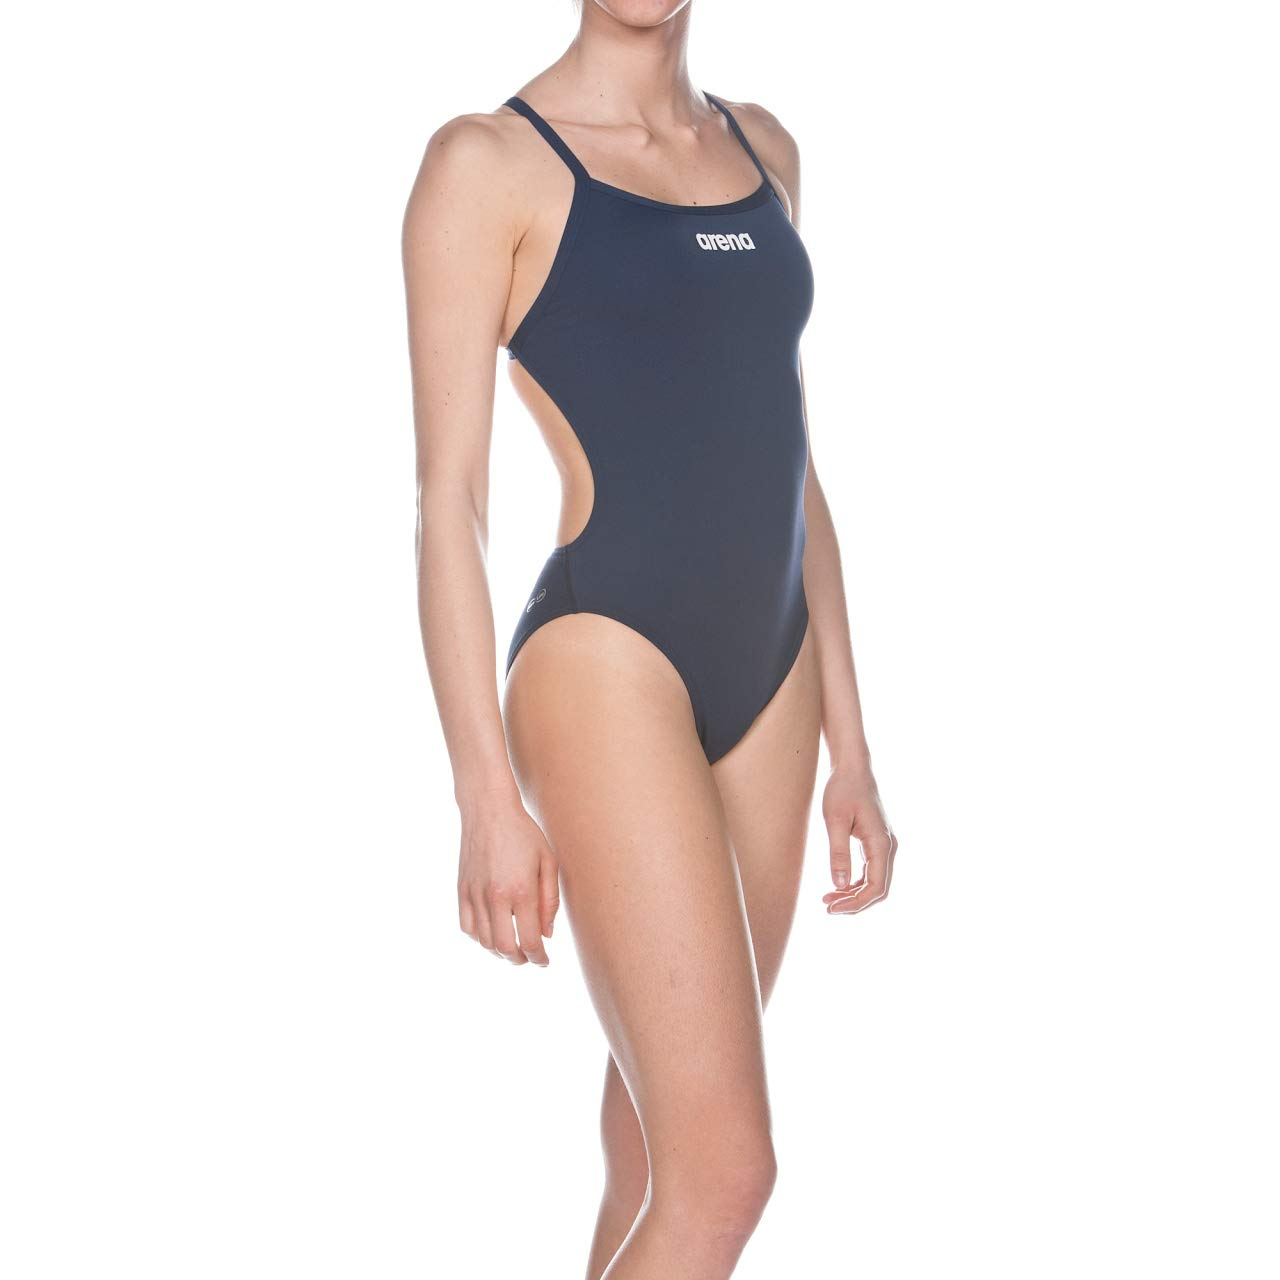 3858263bc7a Arena Womens Solid Light Tech Swimsuit - Navy Blue Size 38, Swim Caps -  Amazon Canada